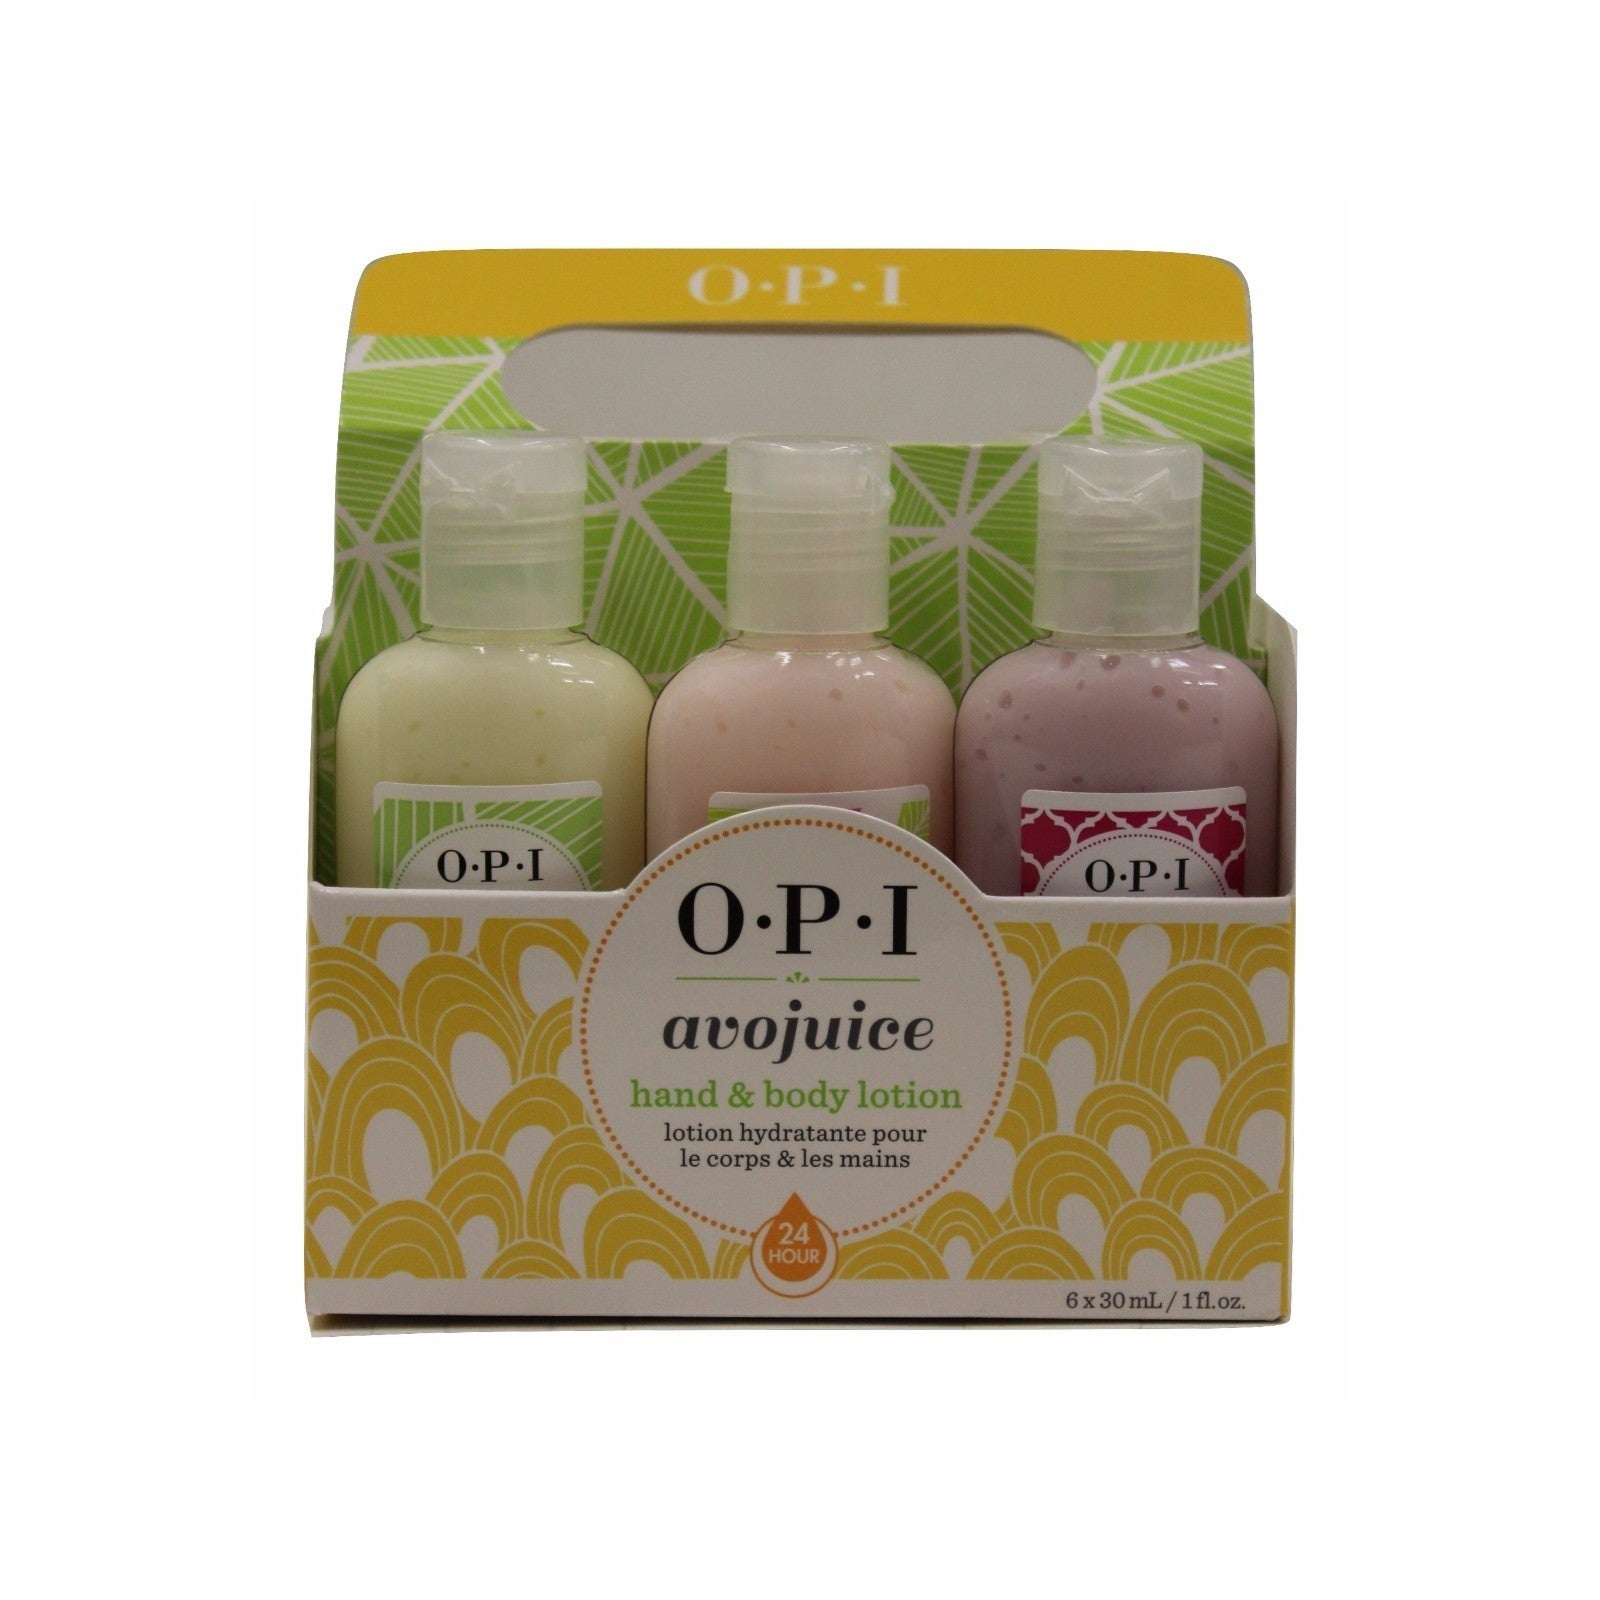 OPI Avojuice 6-pack Assorted Flavors Hand & Body Lotion (...